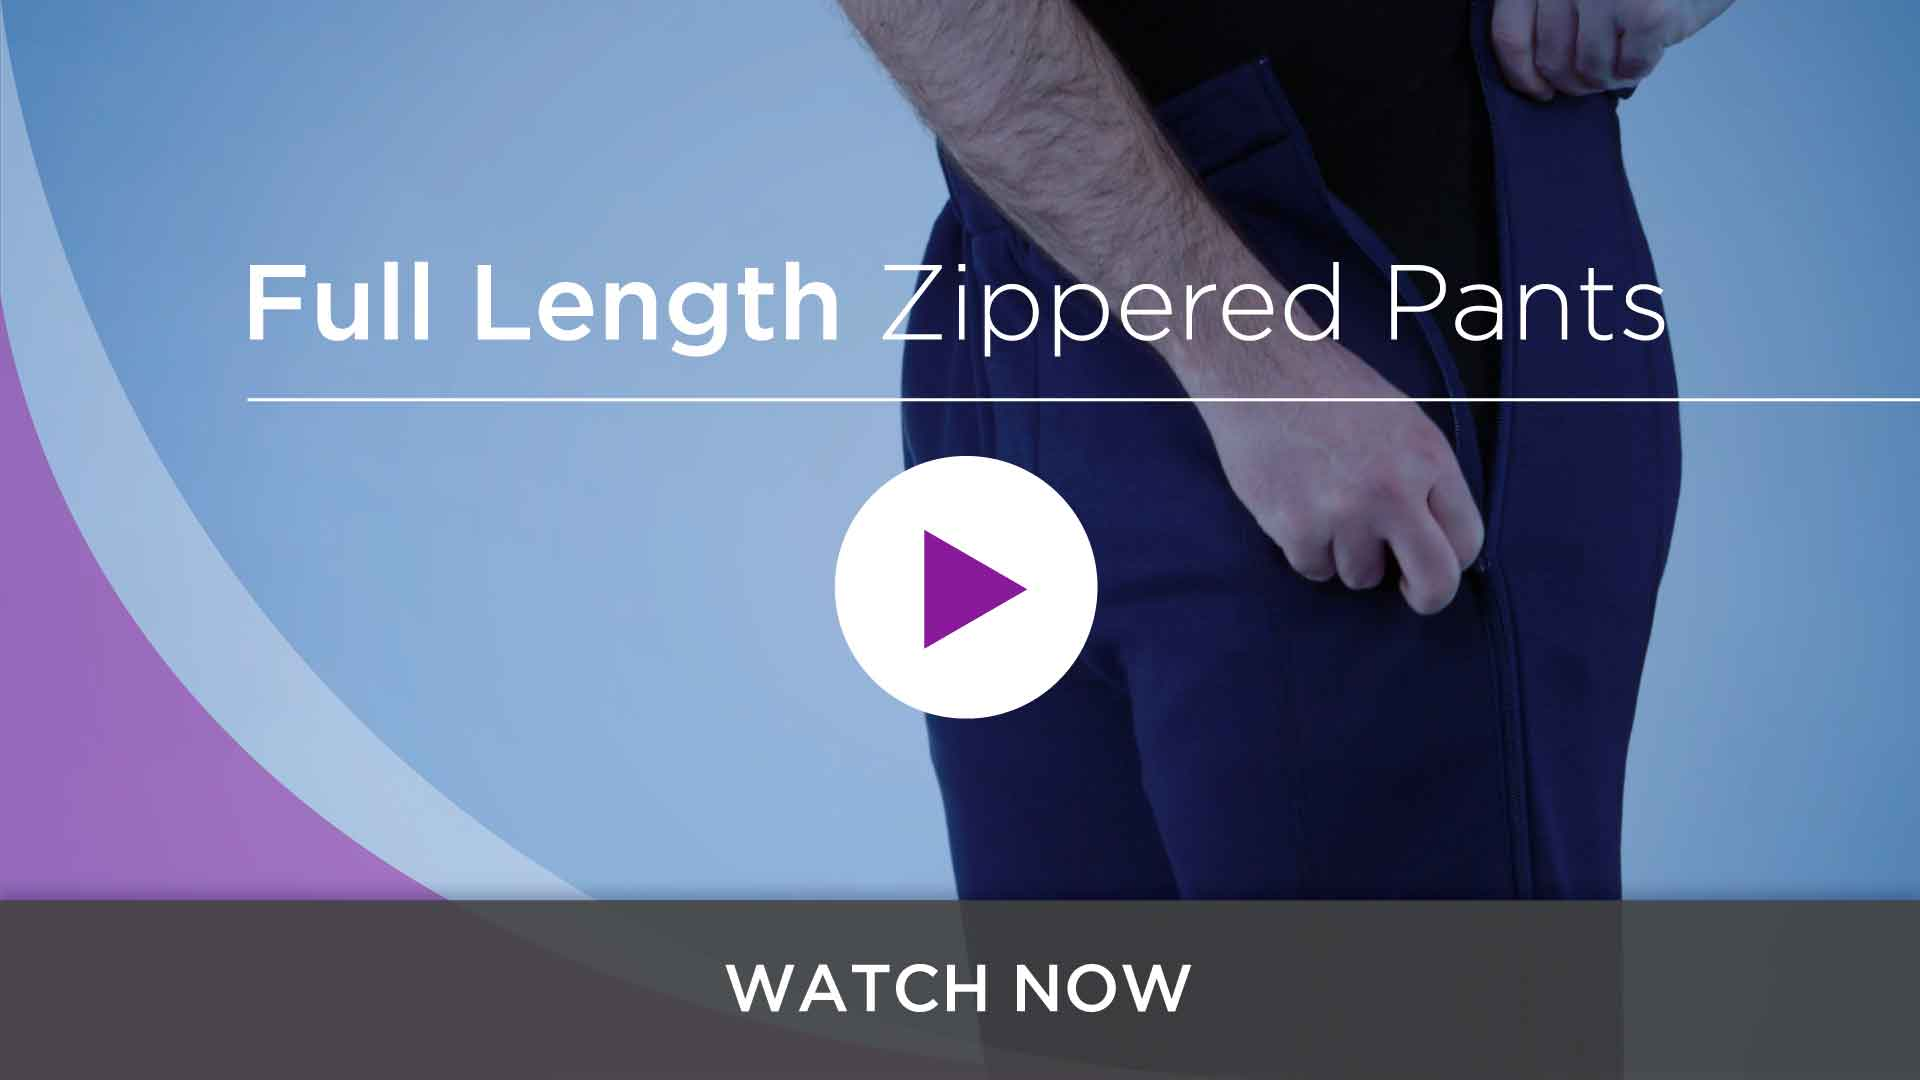 Women's & Men's Zipper Pants For Arthritis, Catheters and Paralysis